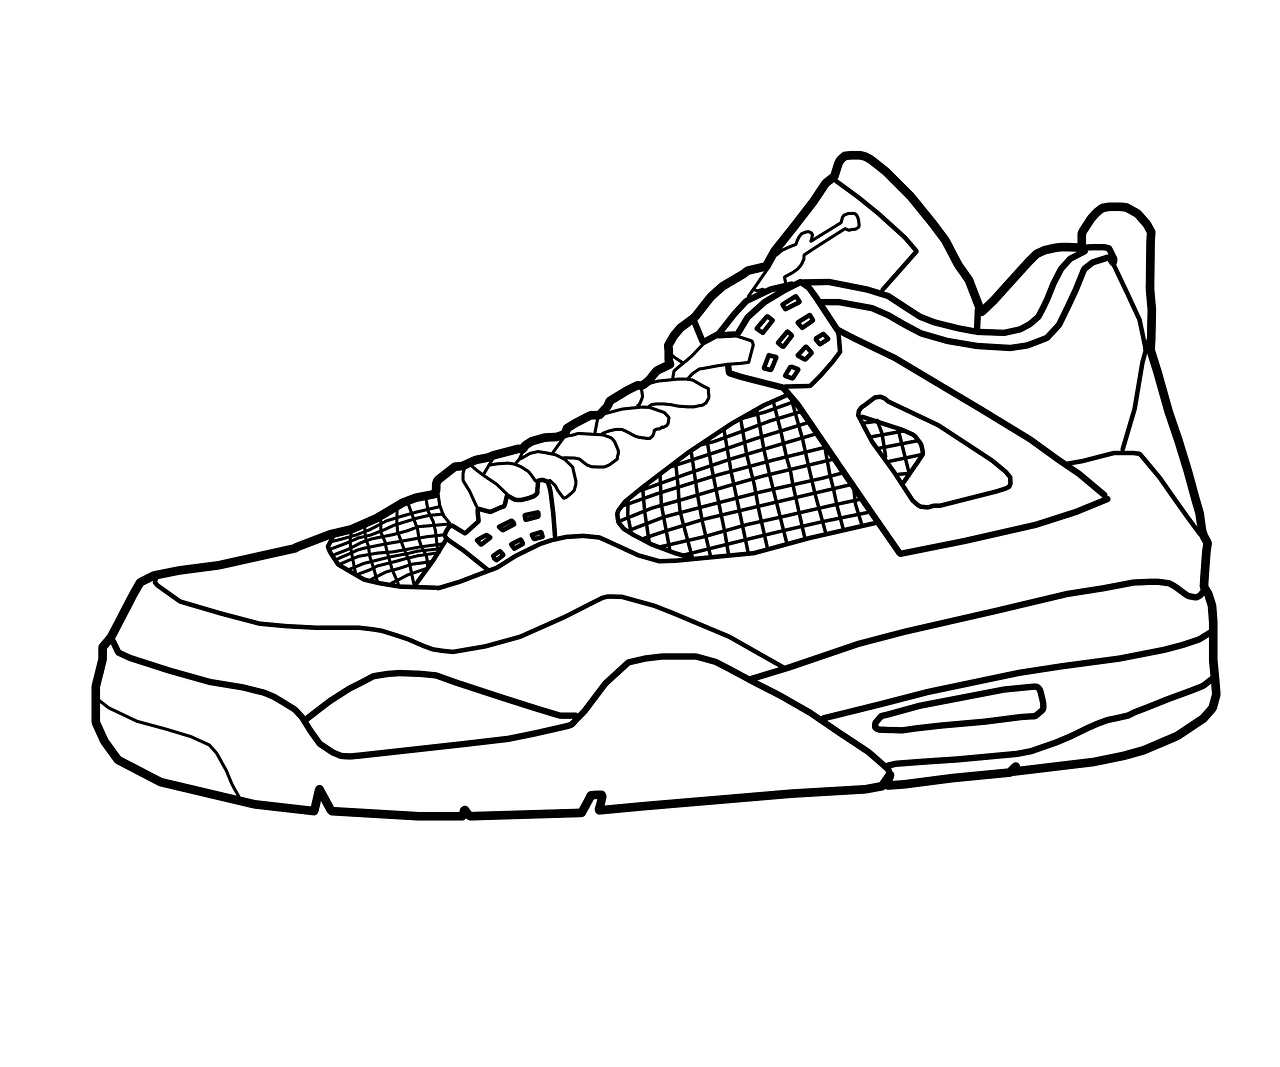 Drawing Jordans Shoes Coloring Pages | PIEZA PLANA ZAPATO ...